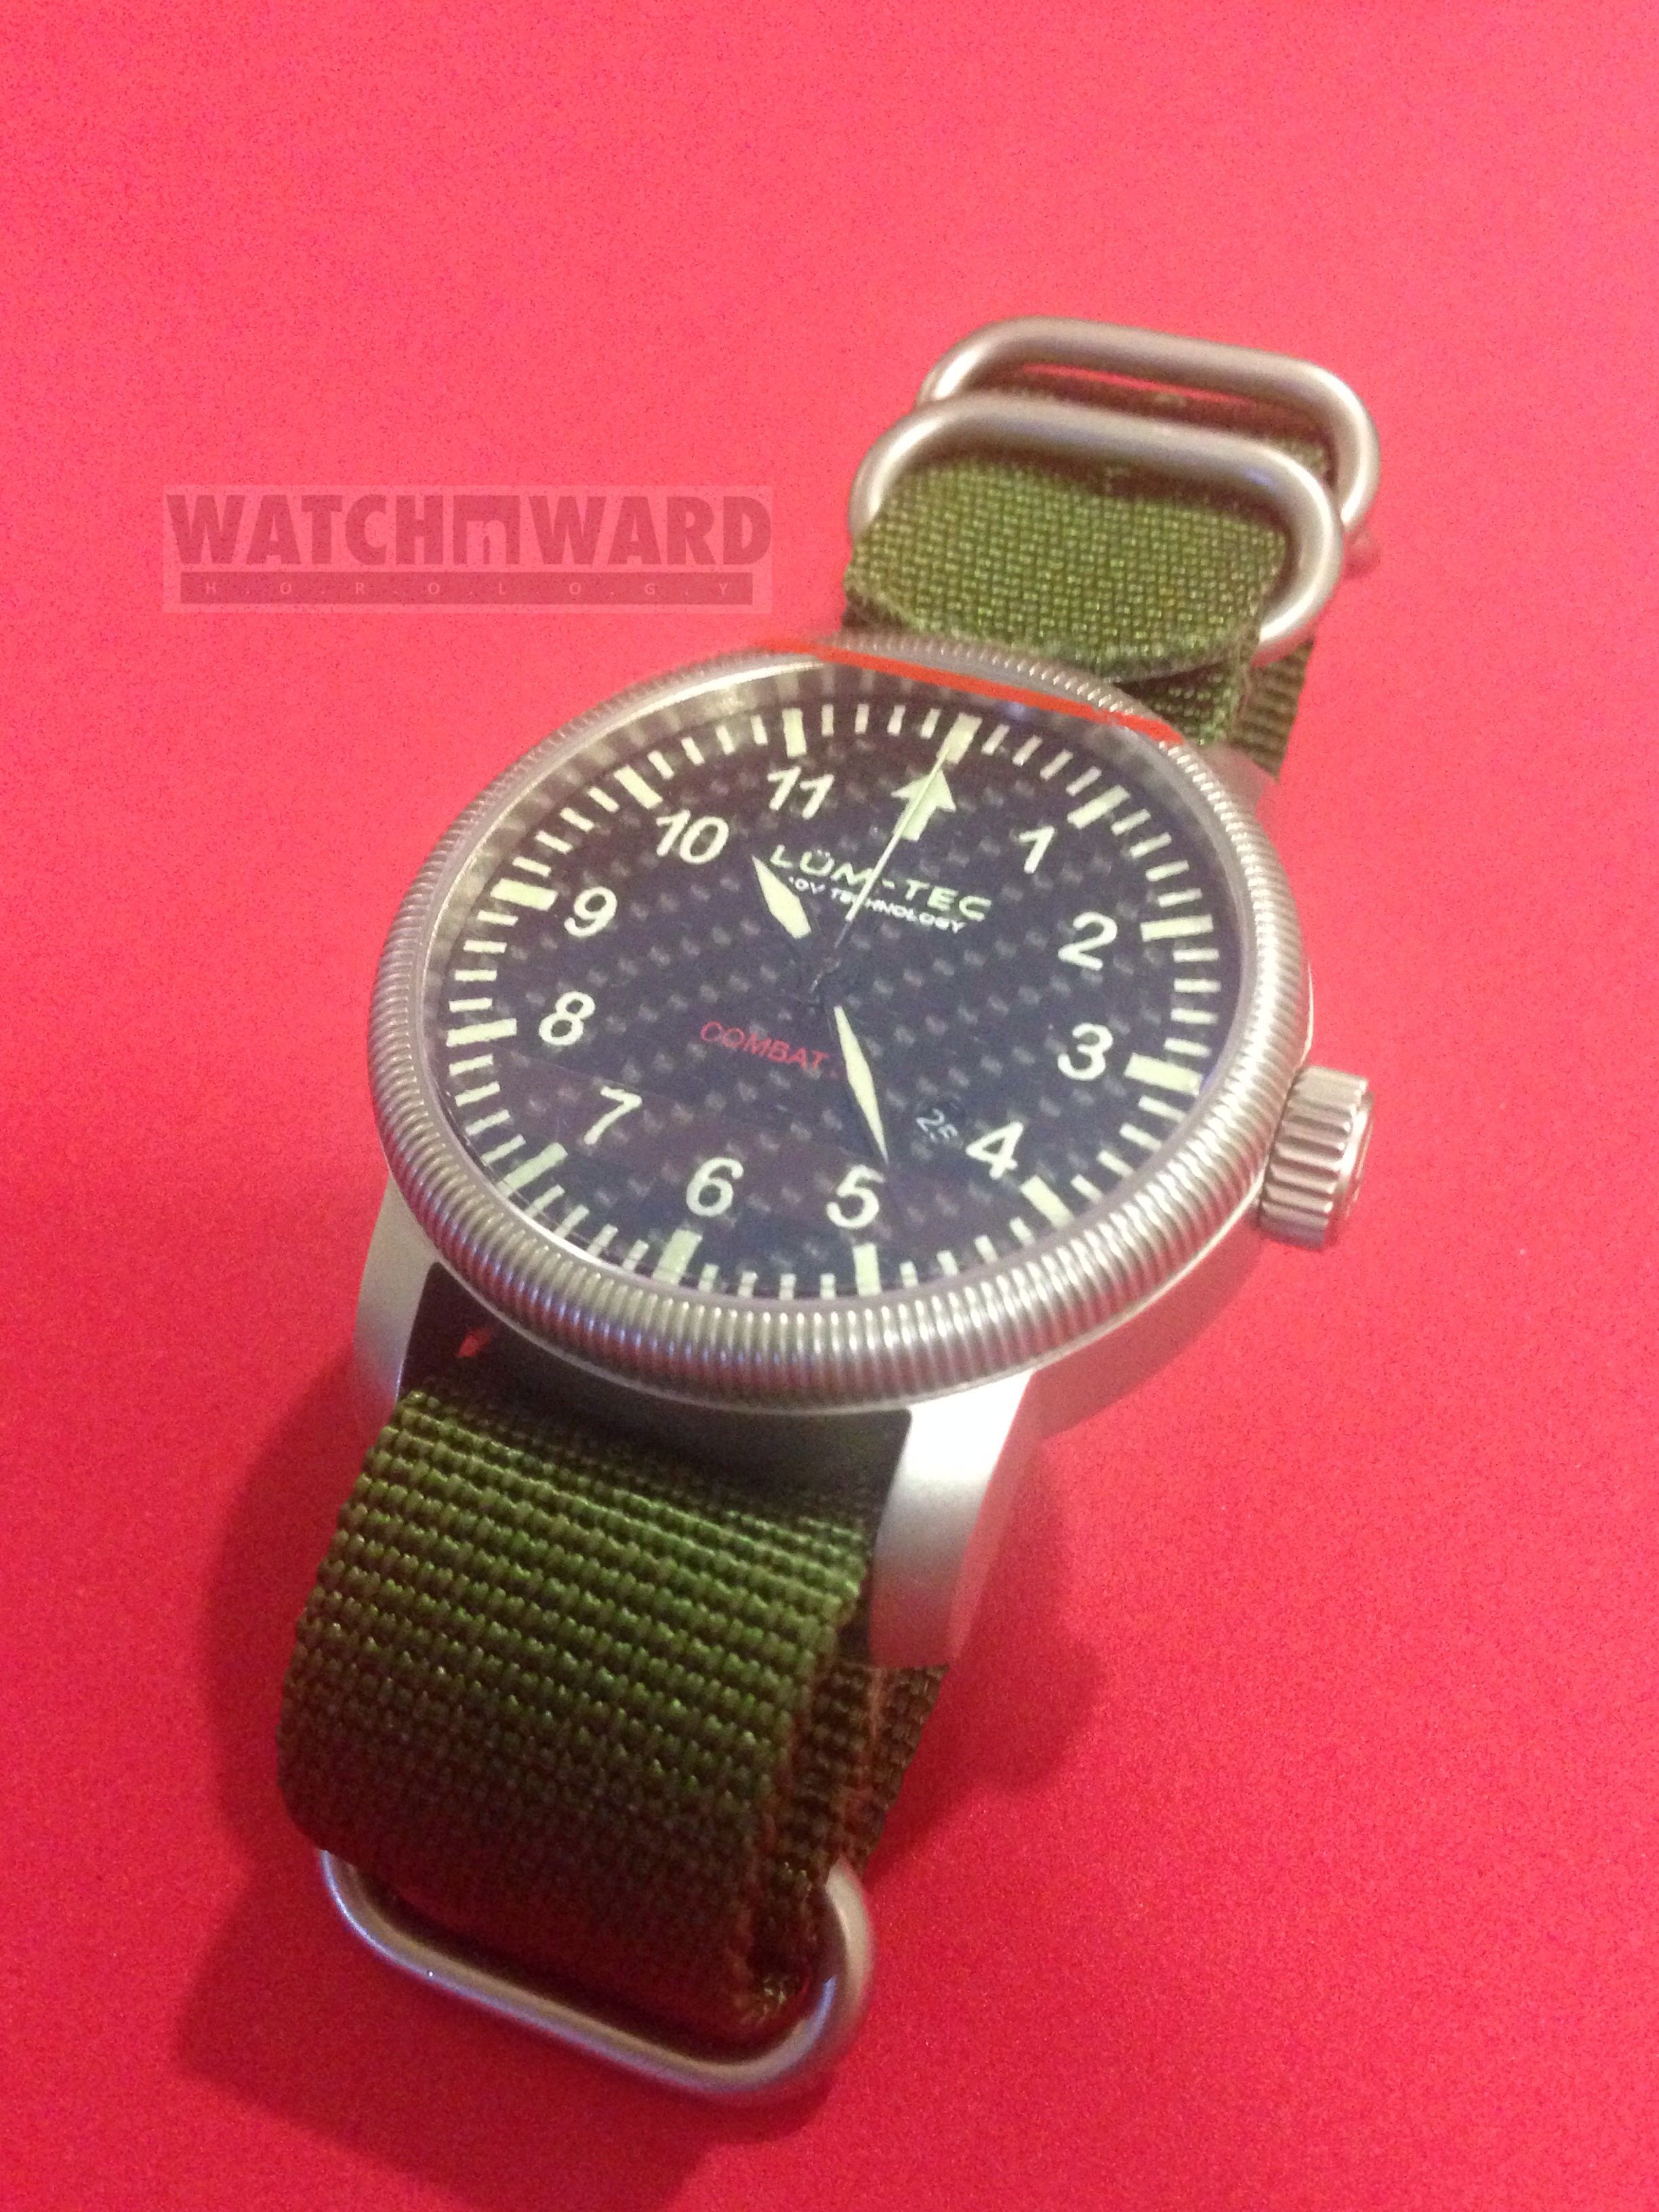 units tagged watches usn demolition oredelmondo large ncdu combat military canteen ii naval ww hamilton collections buships